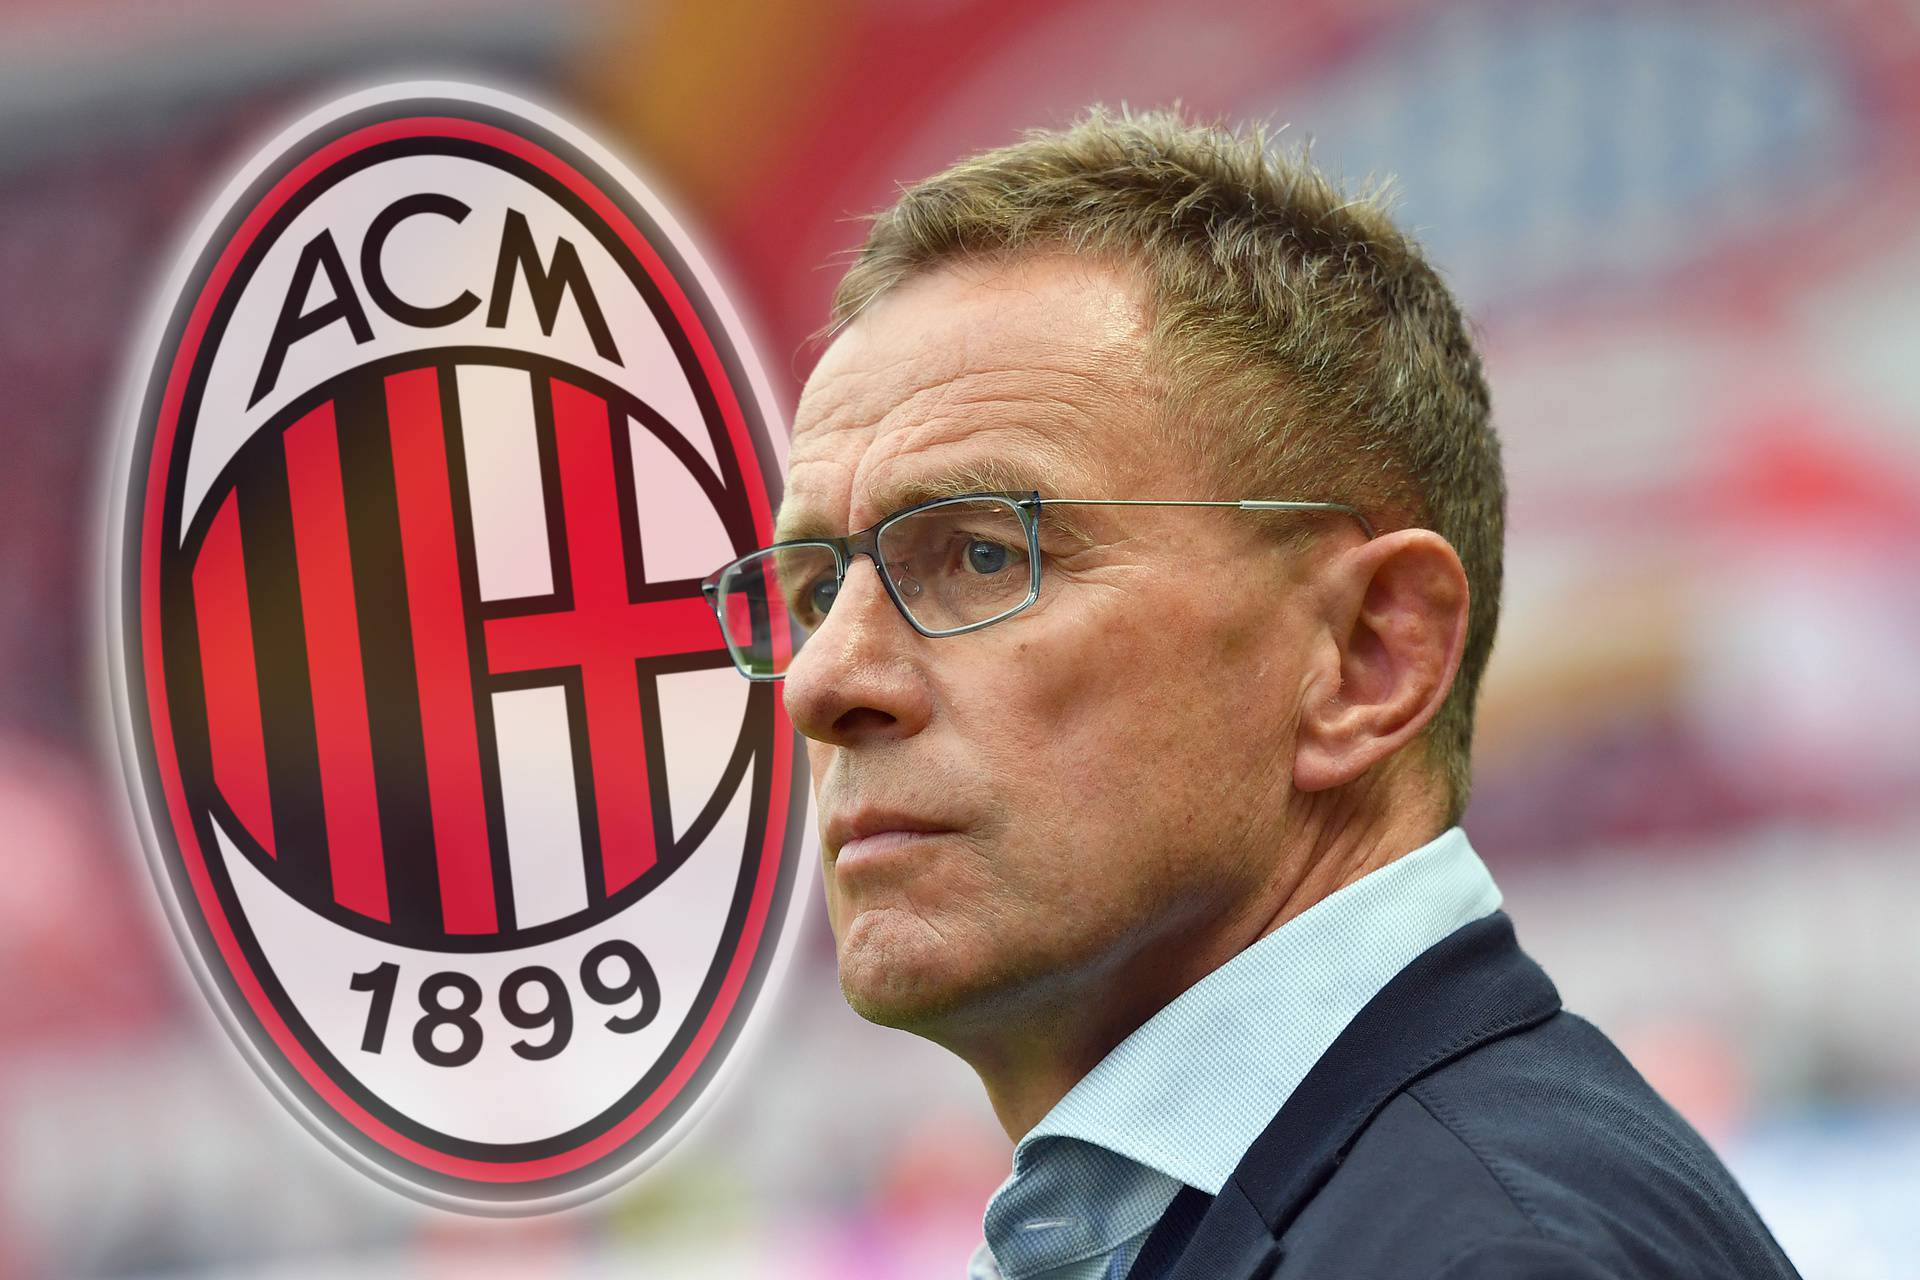 According to media report: Rangnick should become coach and sports director at AC Milan.